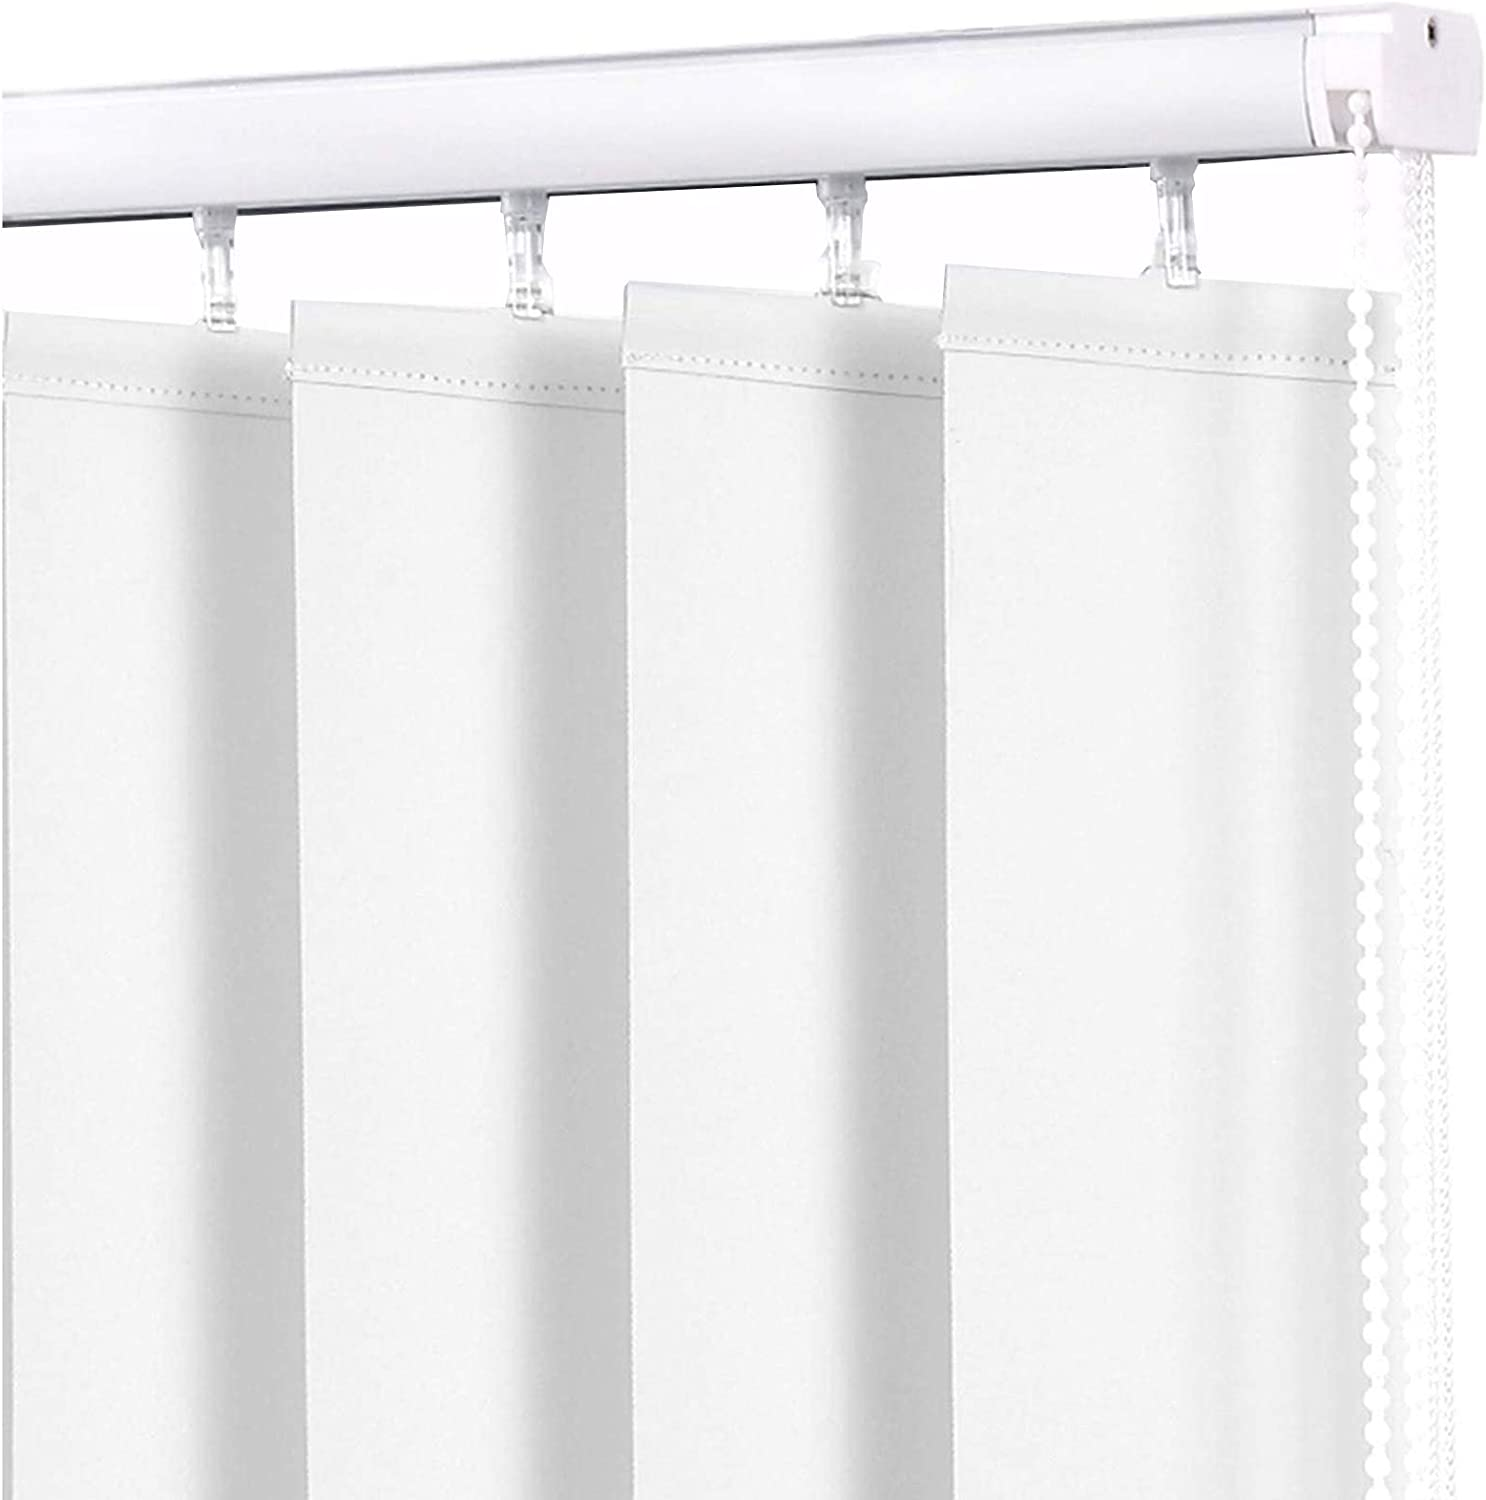 White Waterproof Blackout Vertical Blinds Windows San Antonio Mall G Al sold out. Sliding for